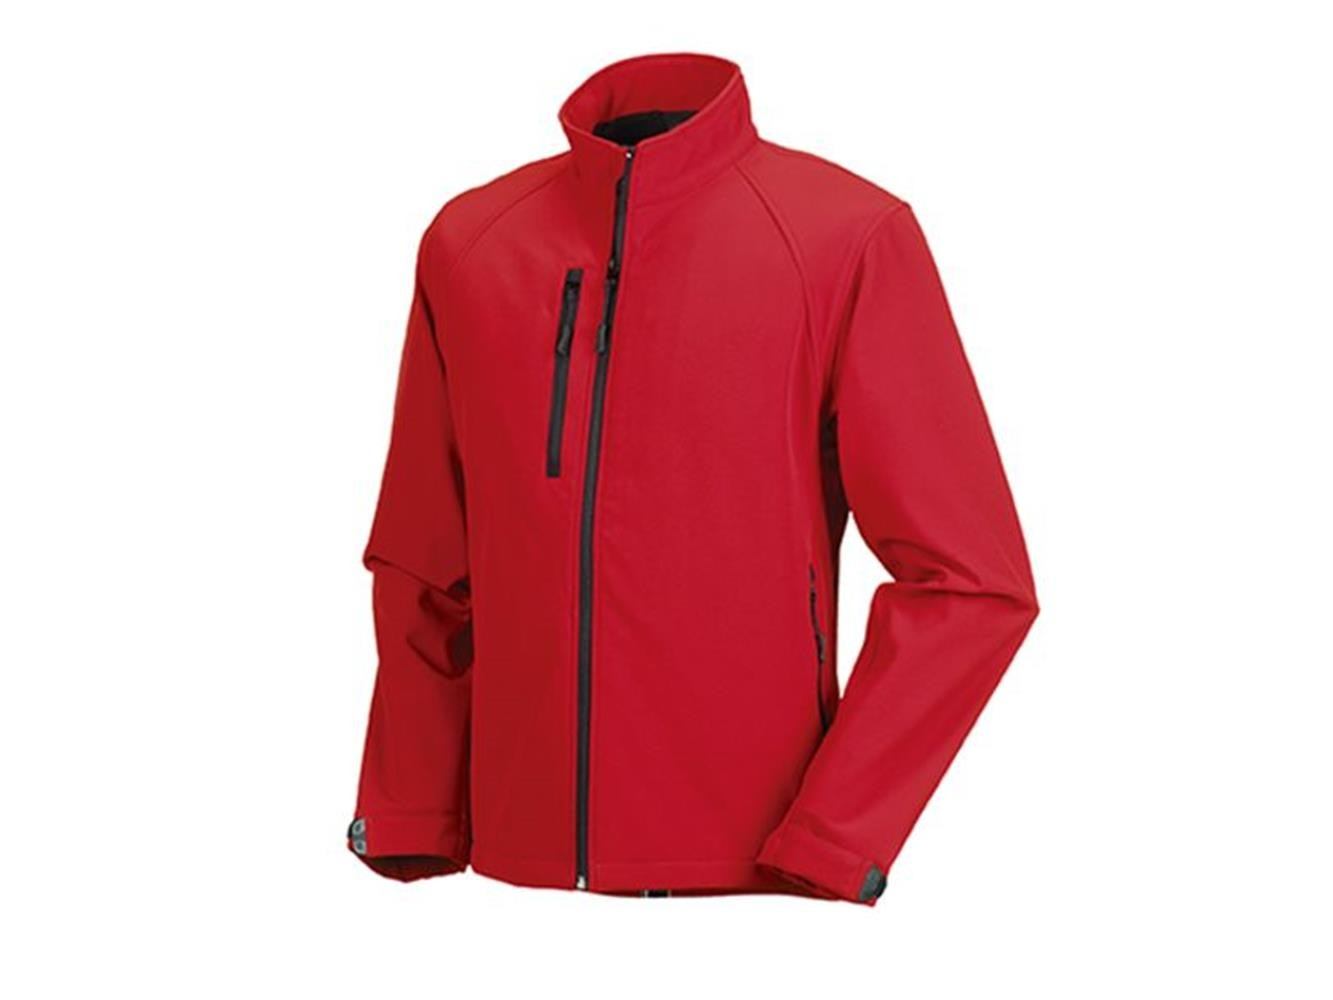 Russel Europe Uomo Softshell Giacca